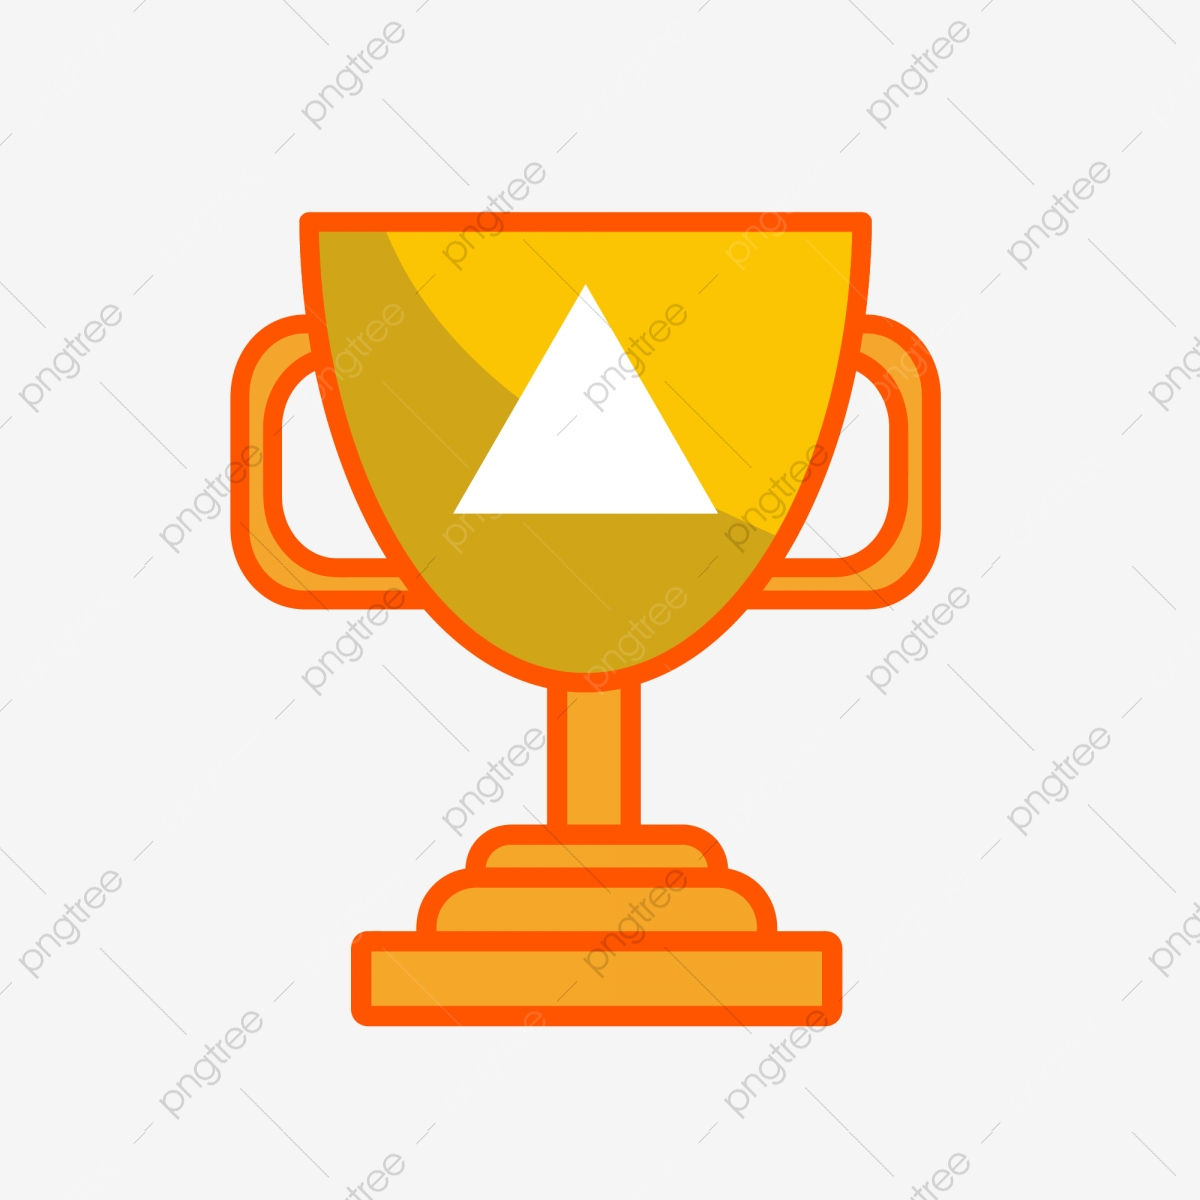 Trophy Png Vector Material, Cup, Creative Trophy, Png PNG.